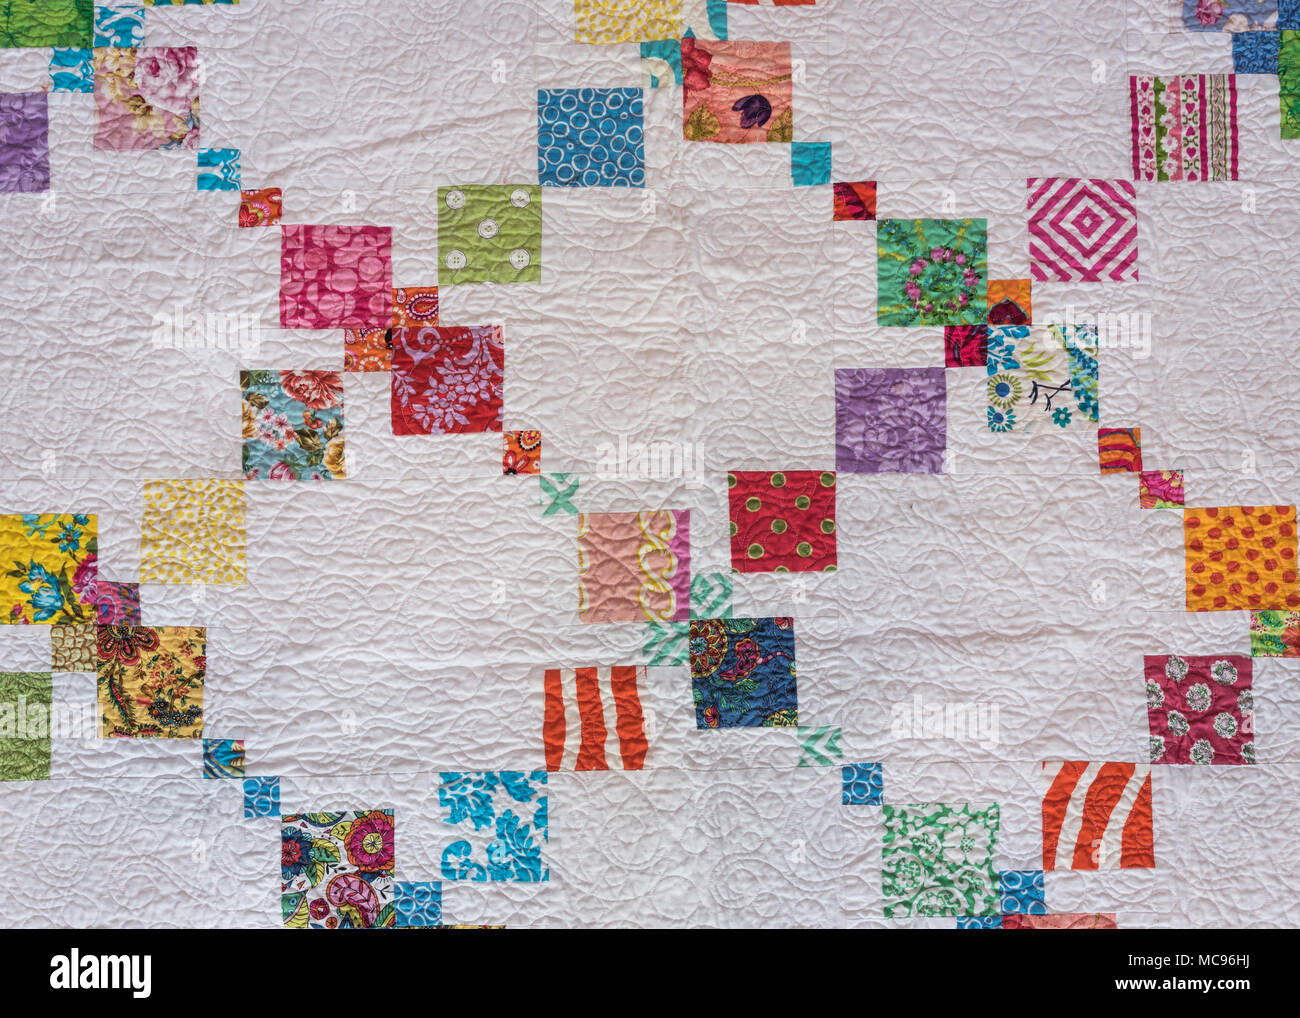 White Quilt with Diagonal Colorful Accents and decorative stitching - Stock Image